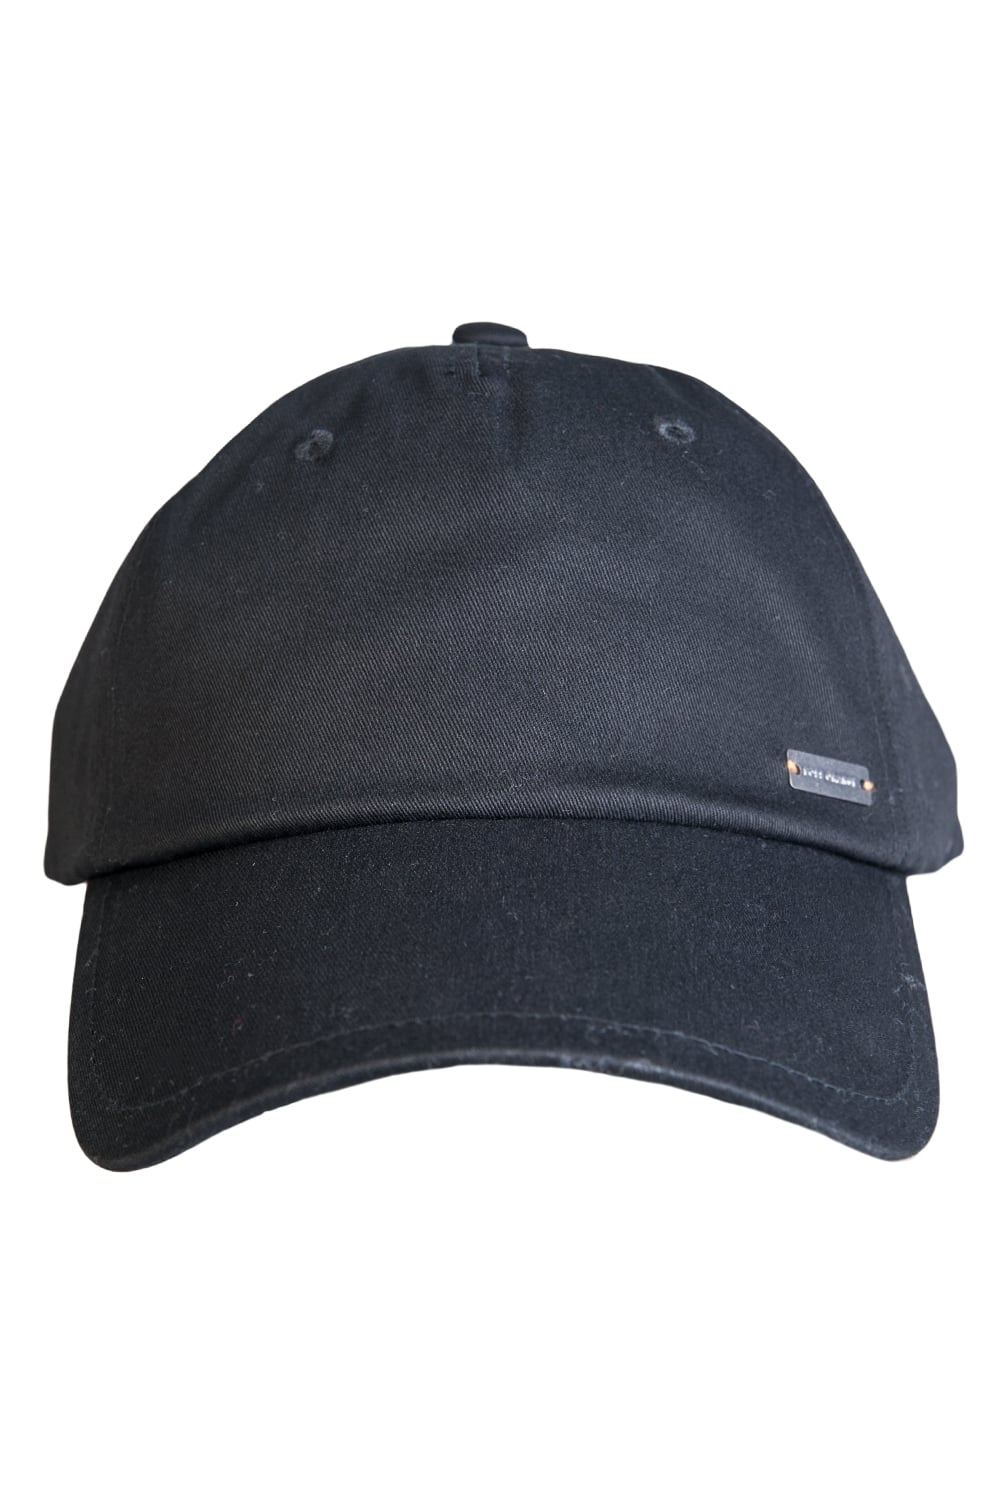 77f020d5 BOSS ORANGE Cap FORCANO 16 50329810 - Accessories from Sage Clothing UK